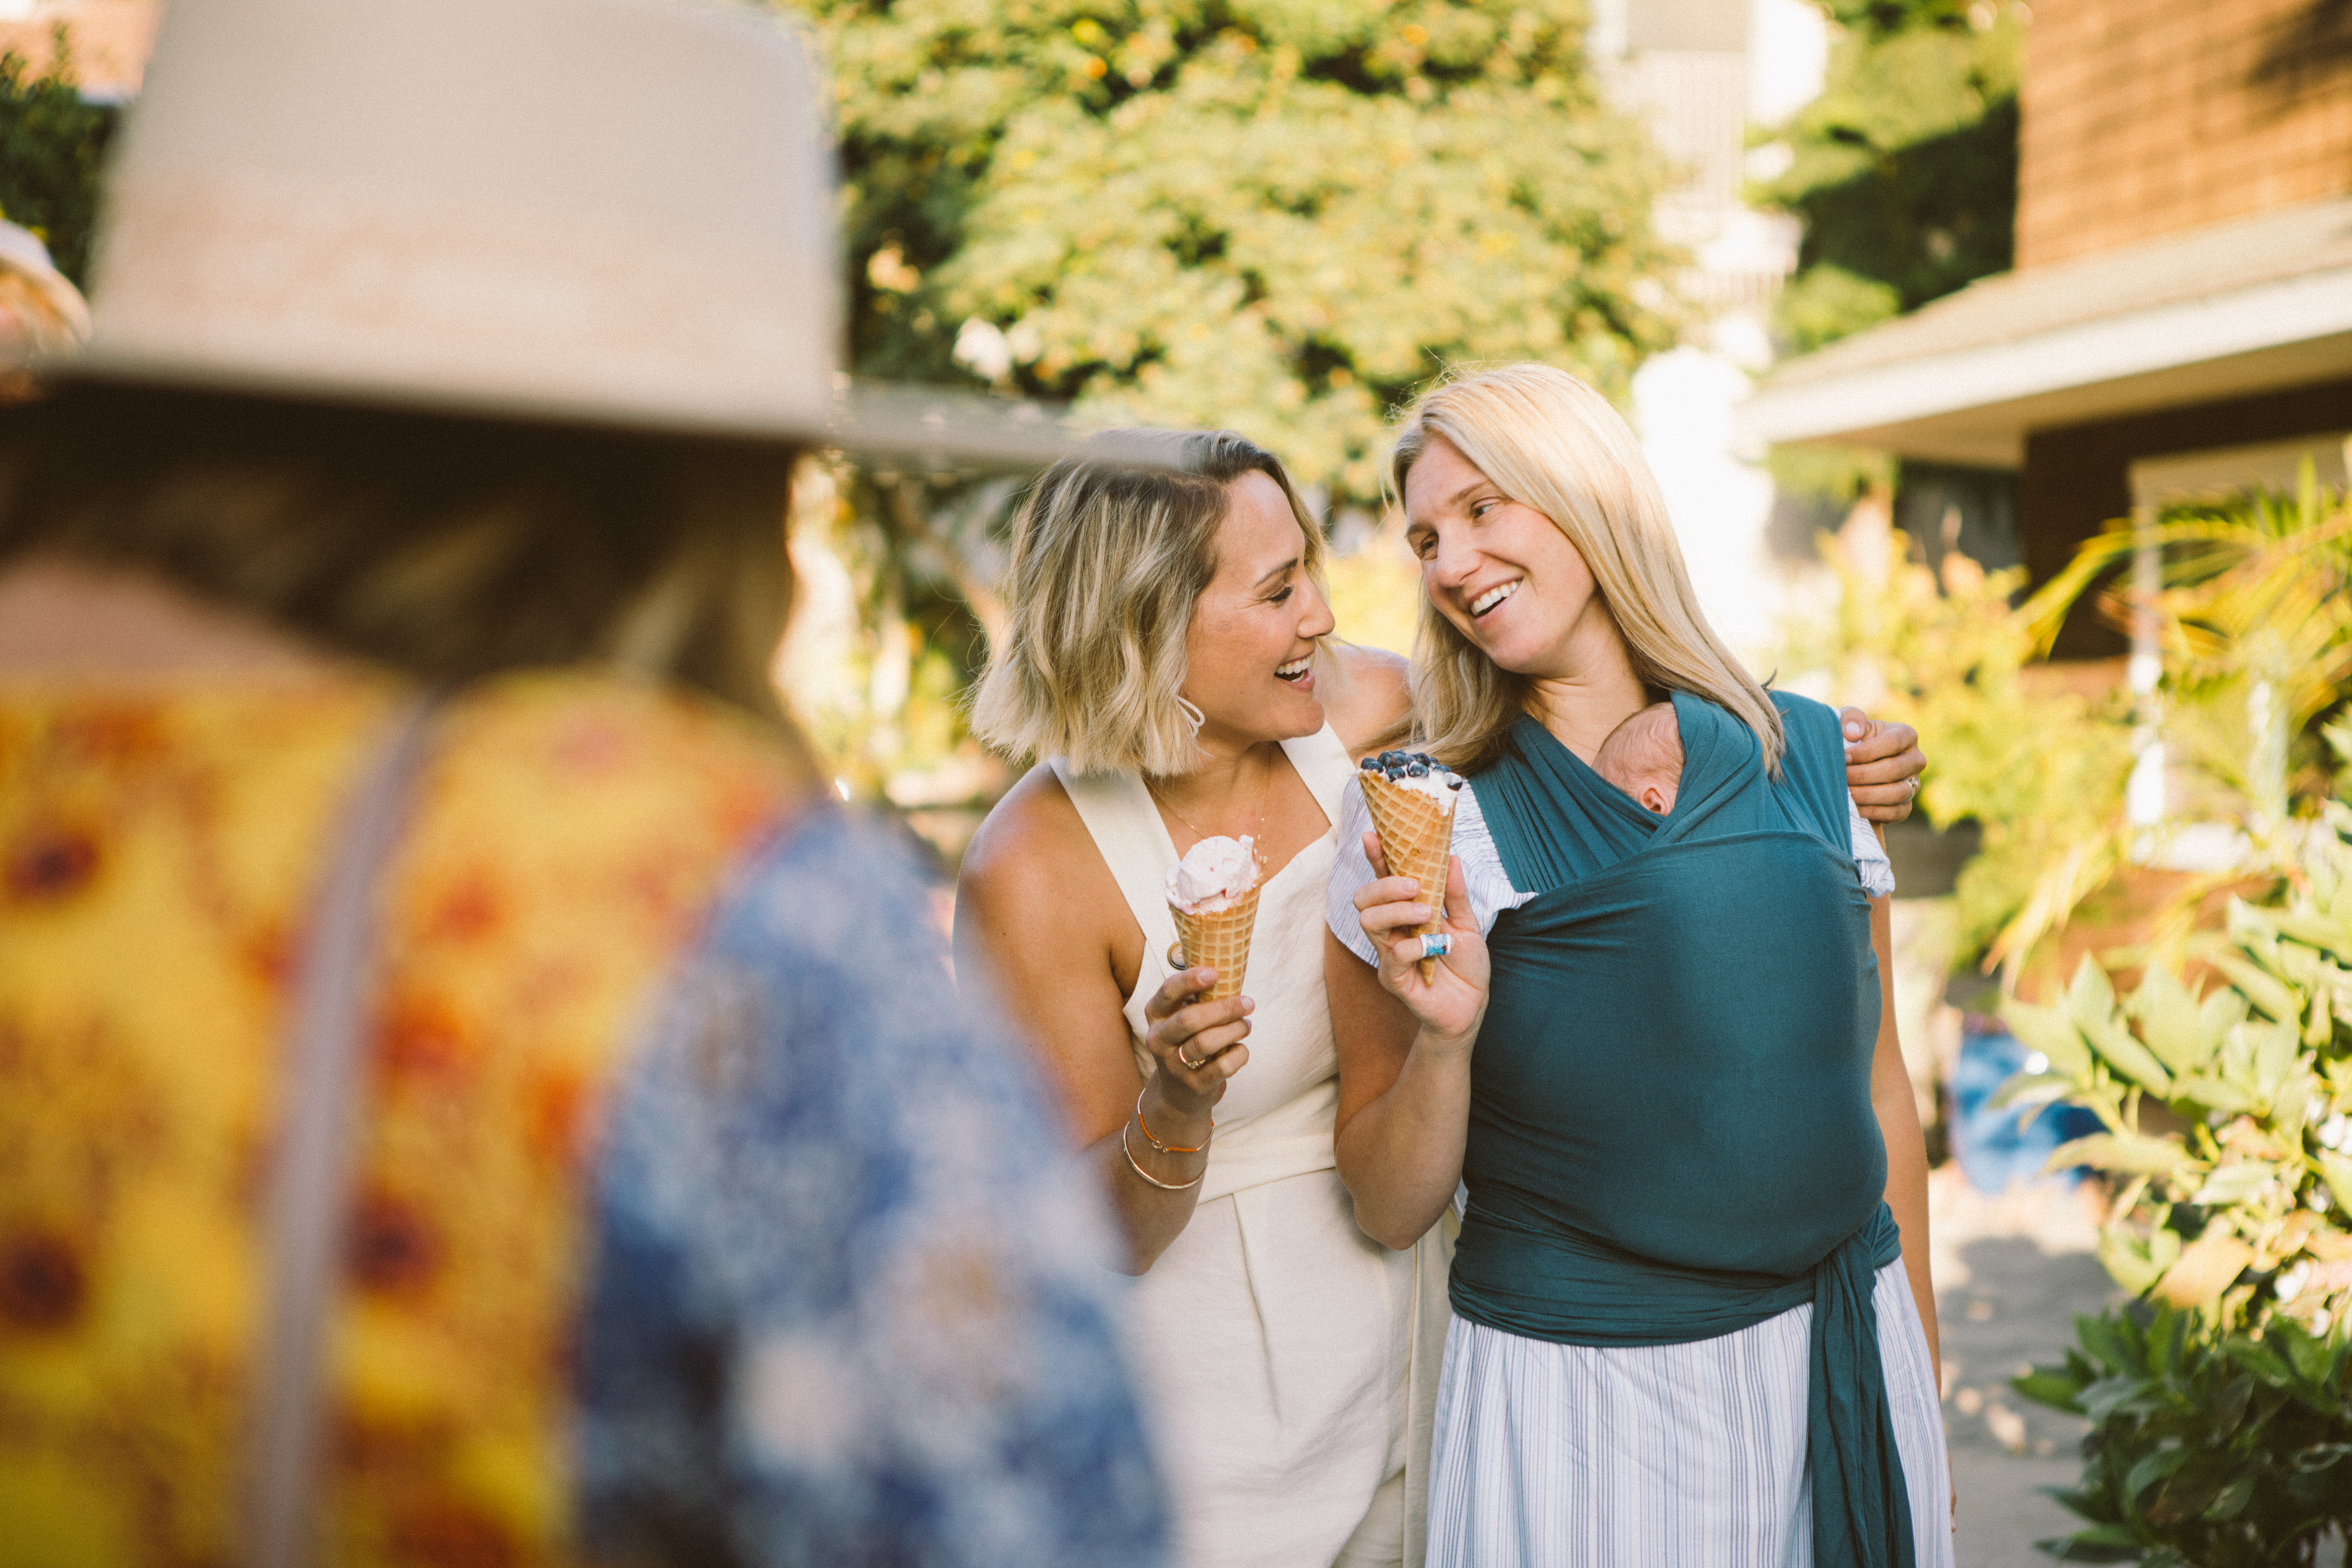 An Ice Cream Garden Party to Empower women